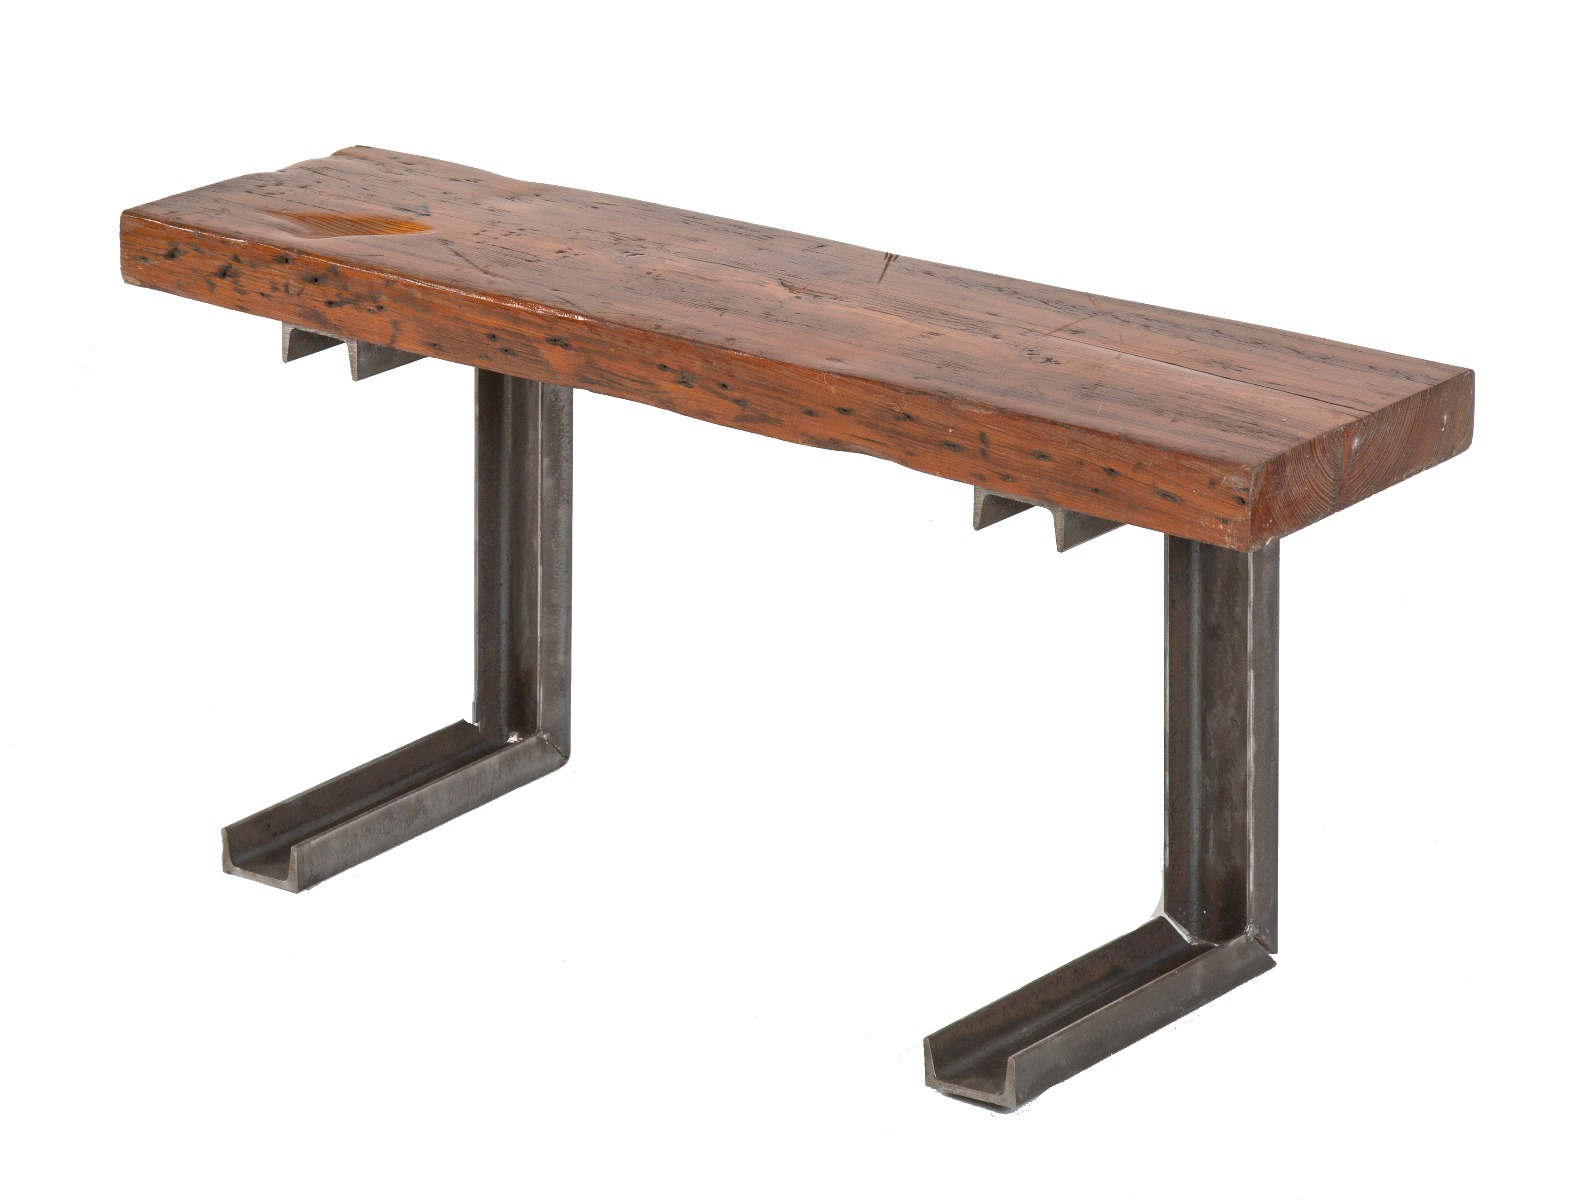 Picture of: Repurposed Vintage American Industrial Channeled Steel Stationary Sitting Bench With Old Growth Pine Wood Seat